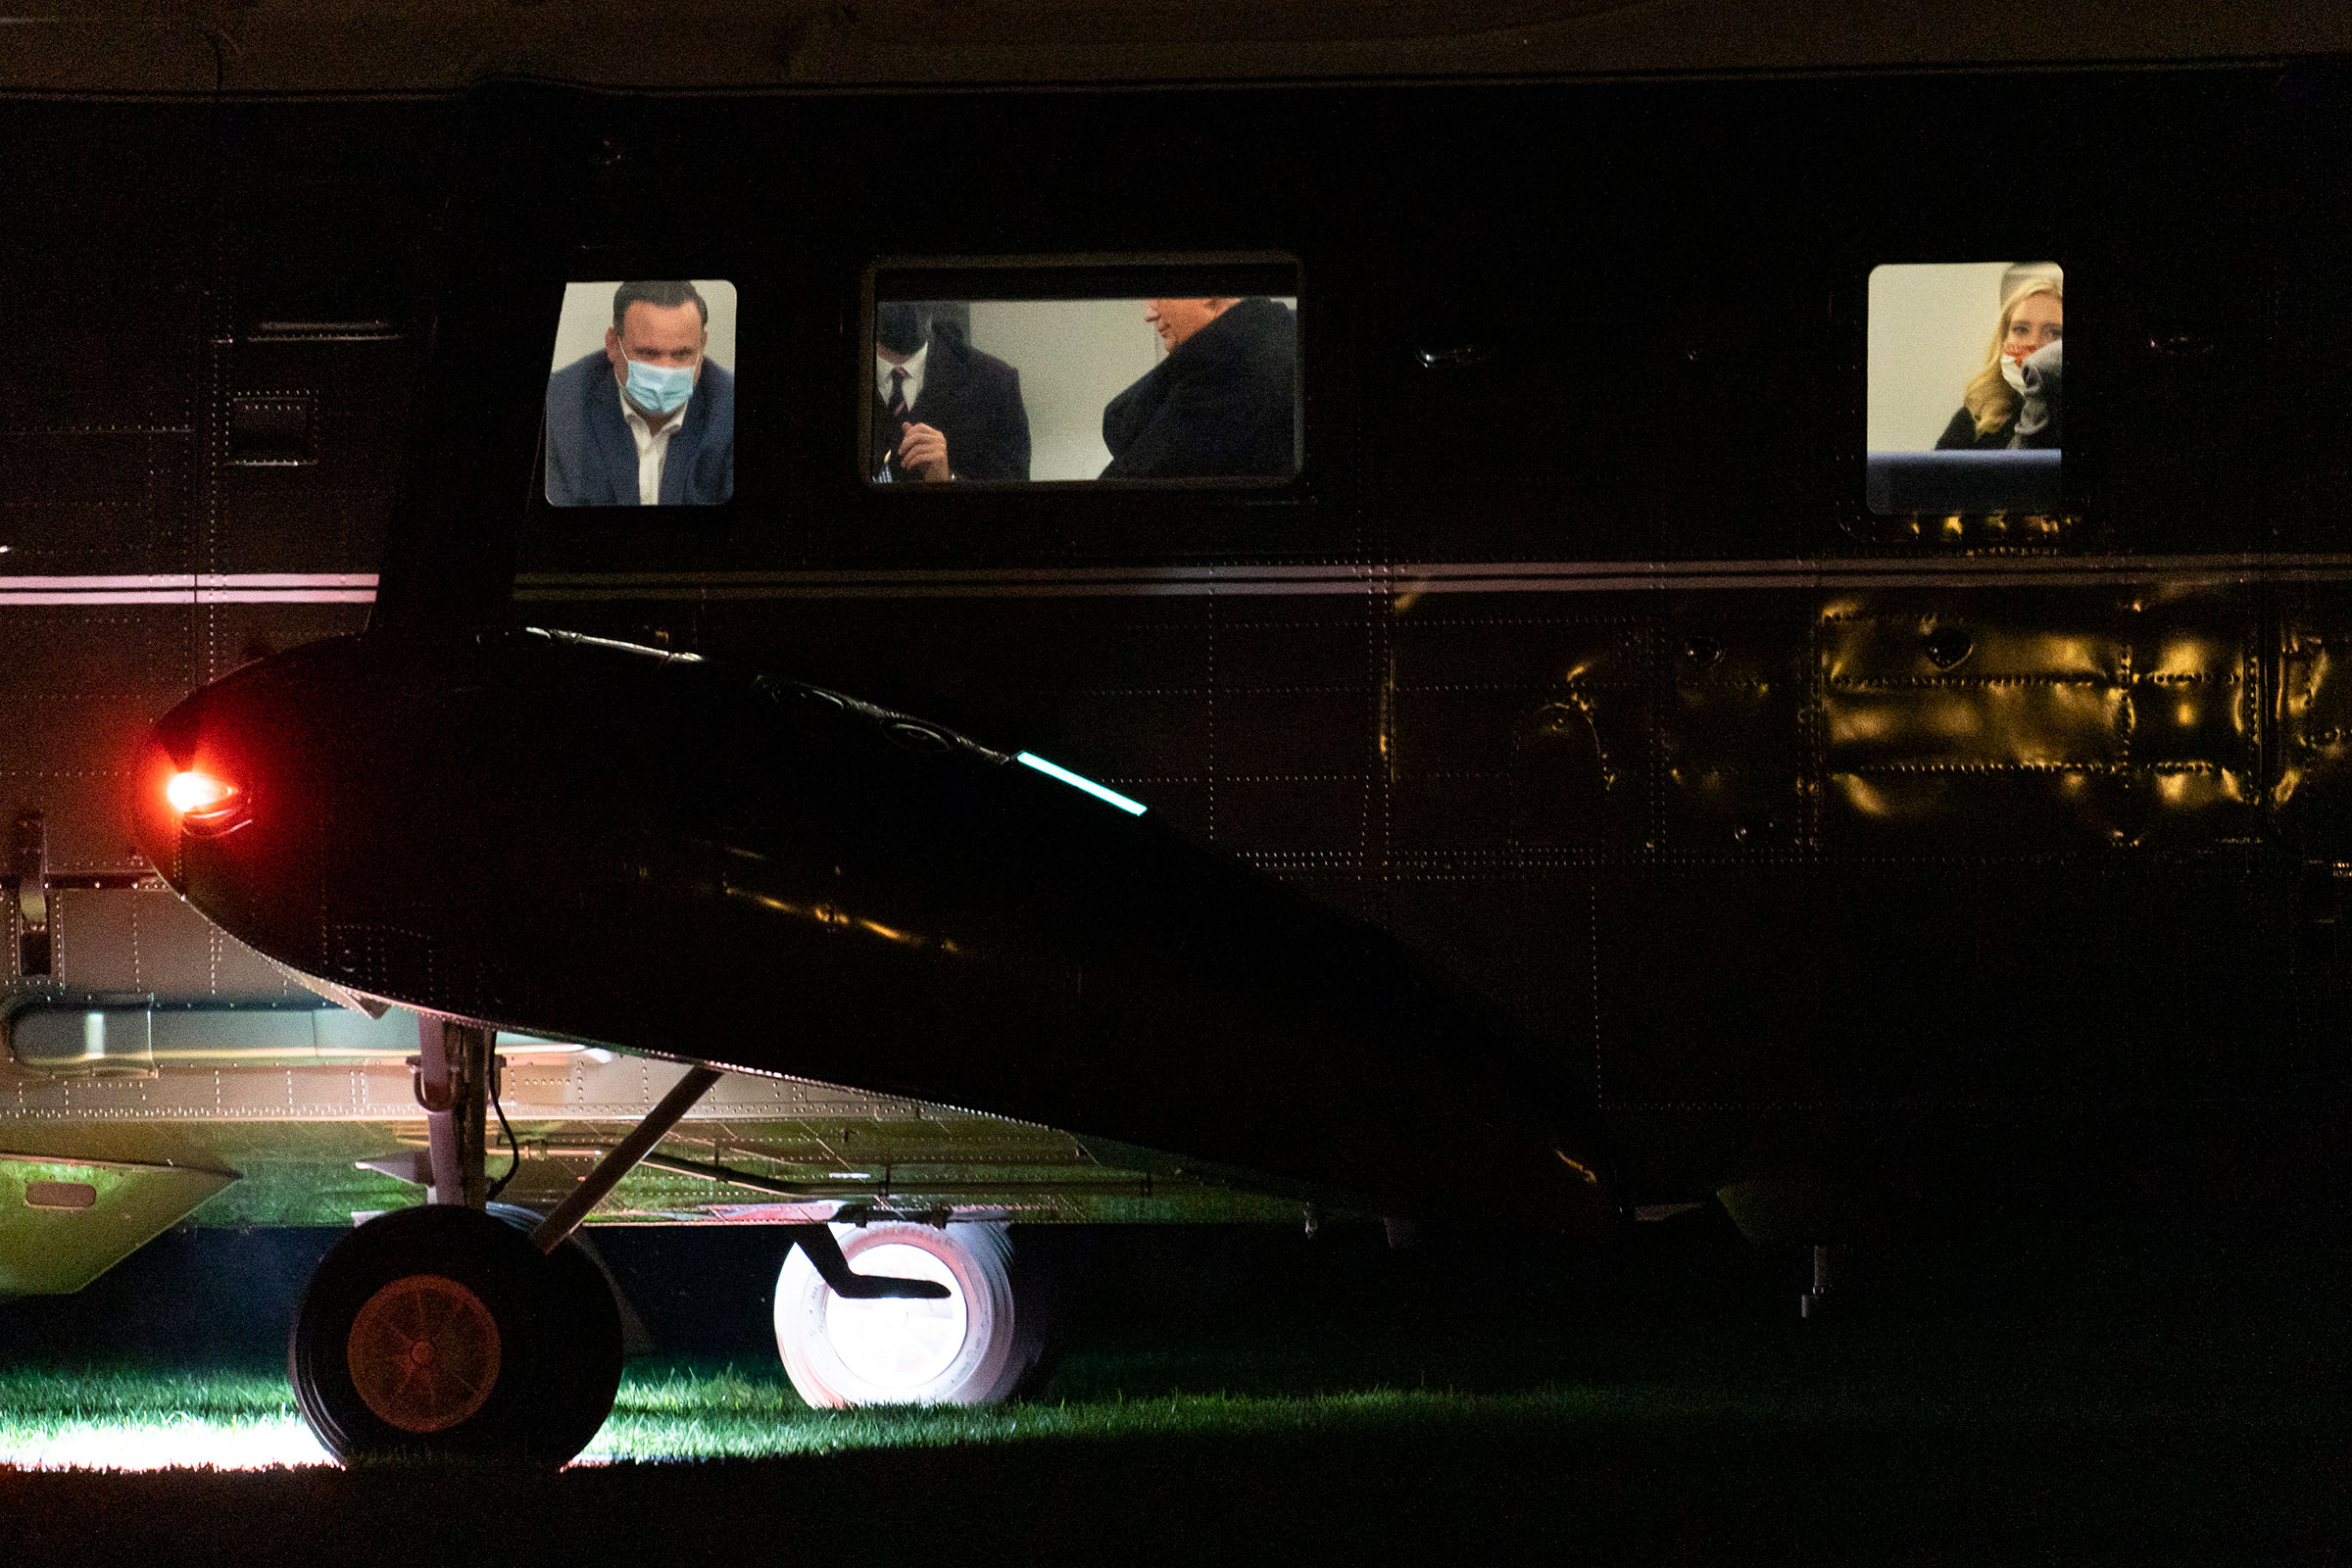 President Donald Trump, center, is seen seated inside Marine One helicopter, not wearing a face mask, as he and members of his staff, including White House director of social media Dan Scavino, left, arrive at the White House in Washington D.C., on Oct. 1, 2020. President Trump and first lady Melania Trump have tested positive for the coronavirus, the president tweeted early Friday.